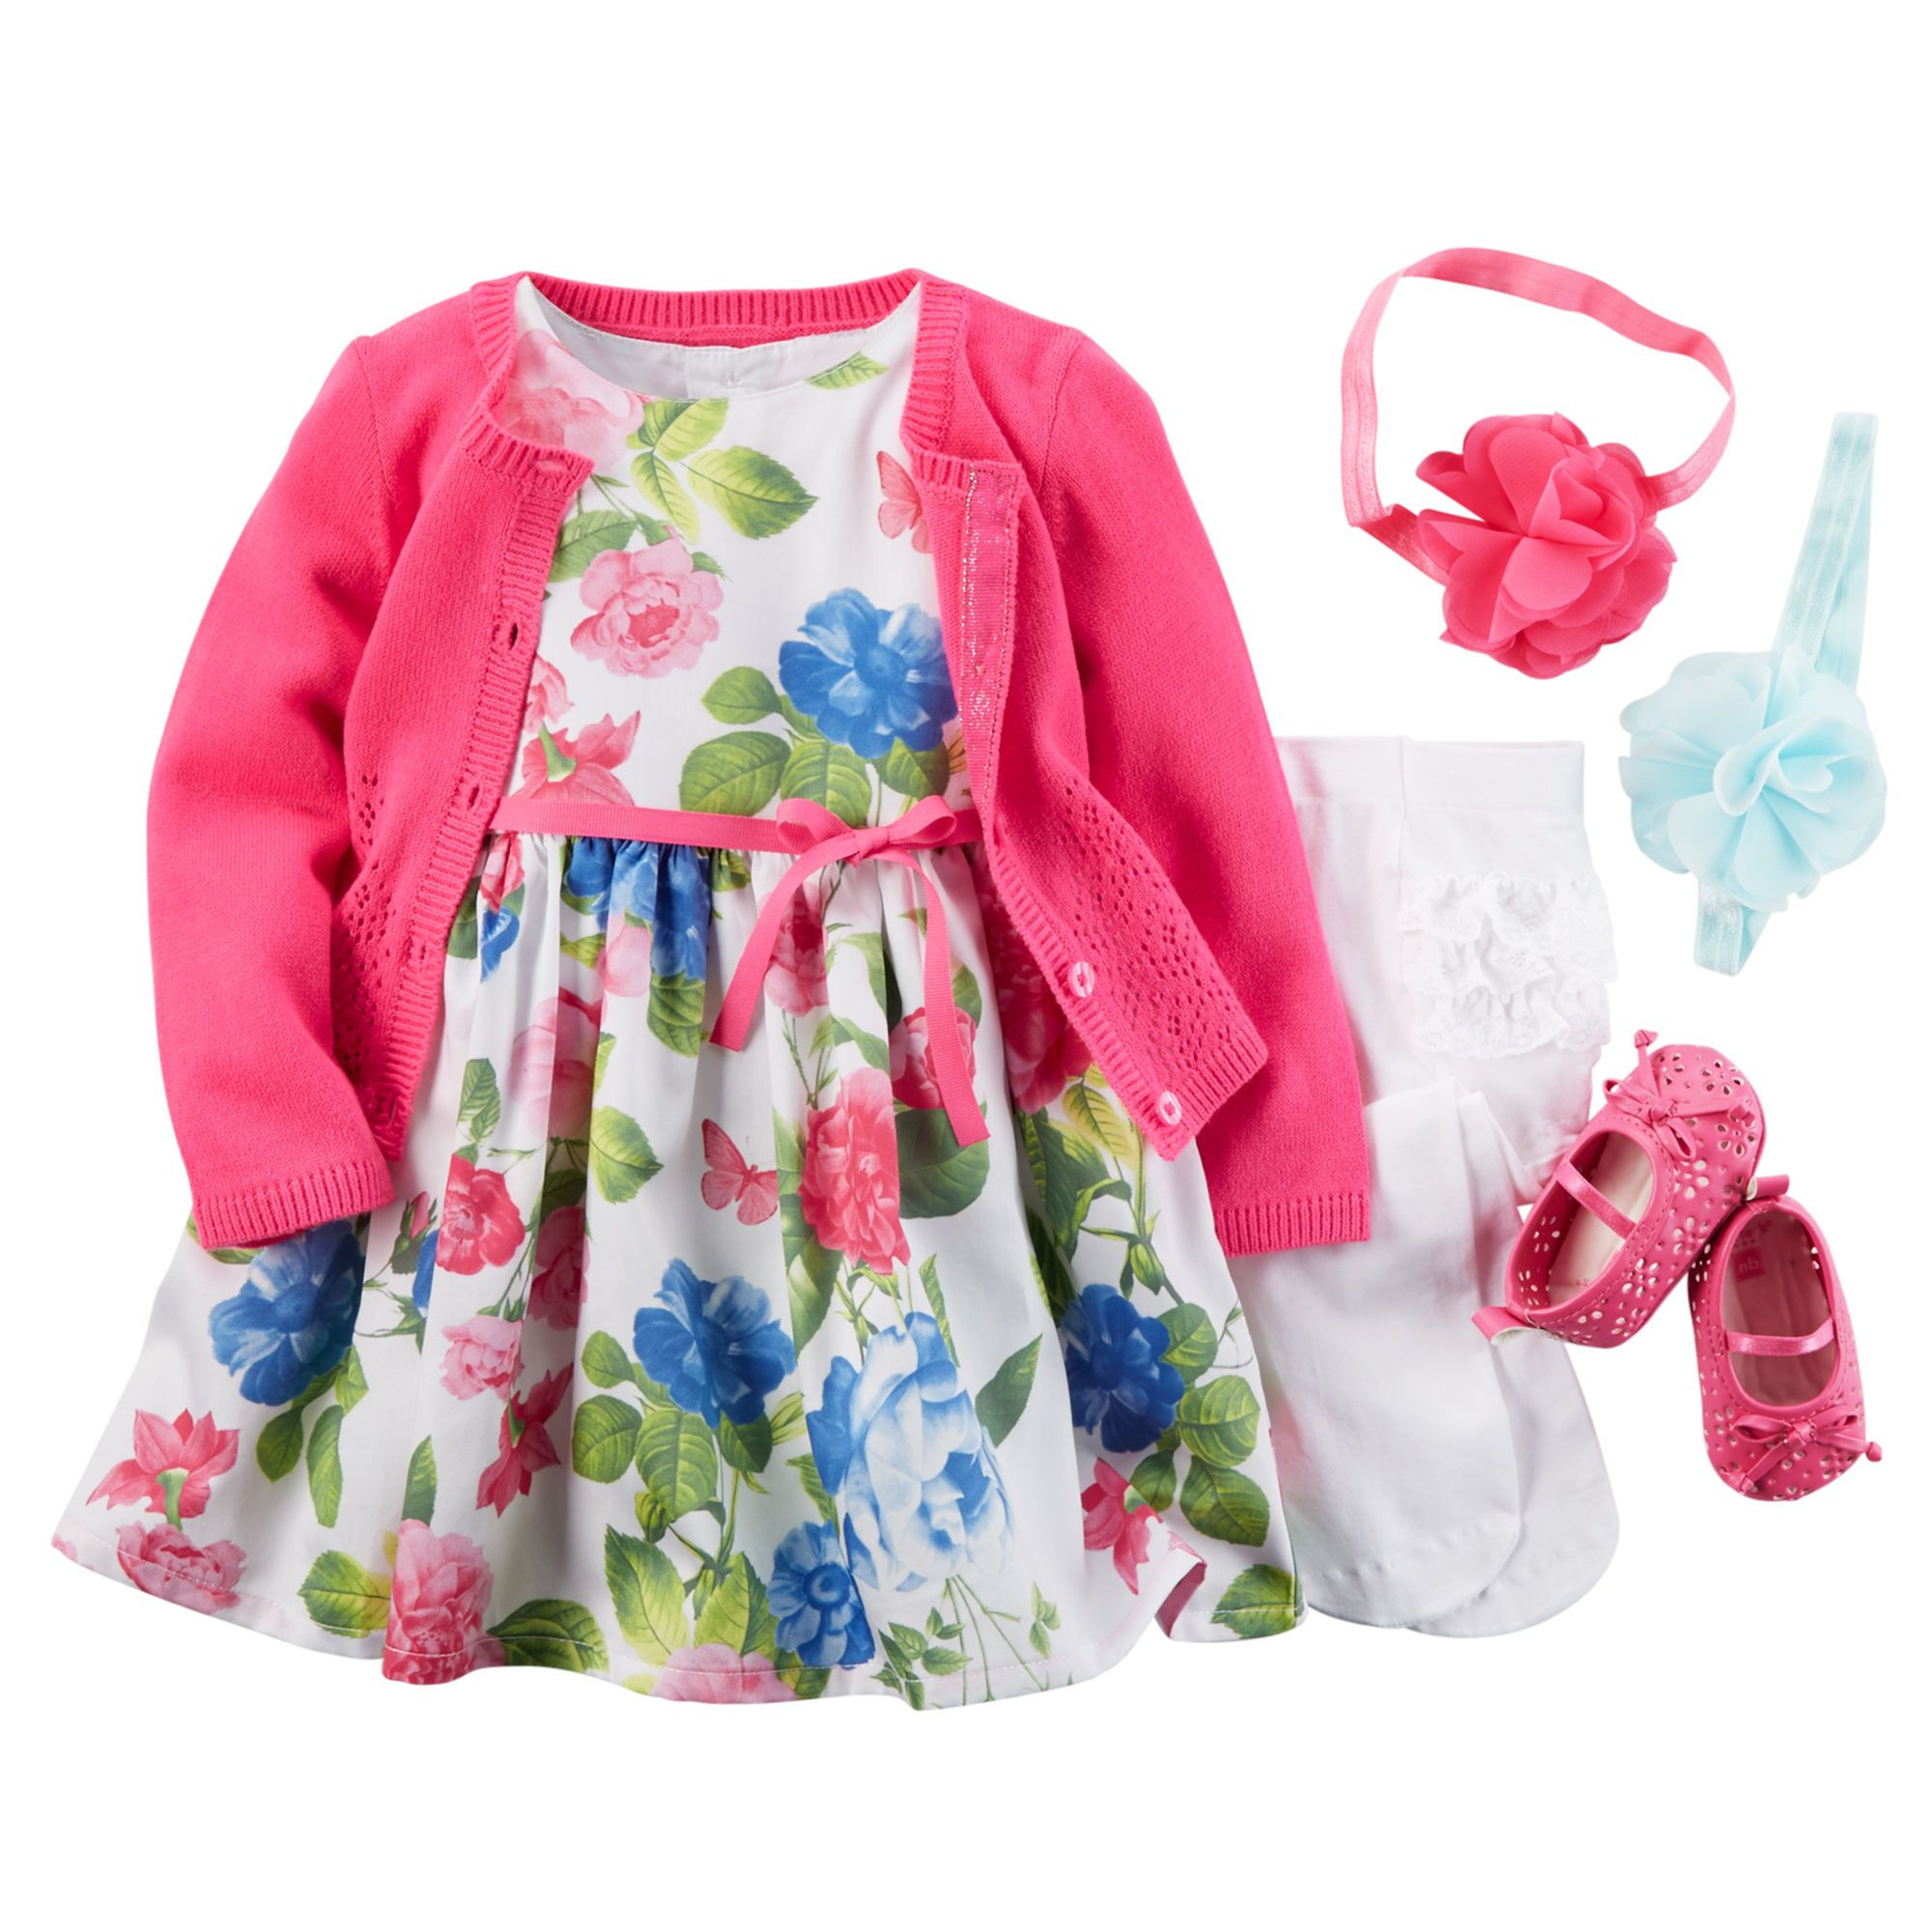 22f6b59f8d80 Everything you love about spring is in this cute little floral ...